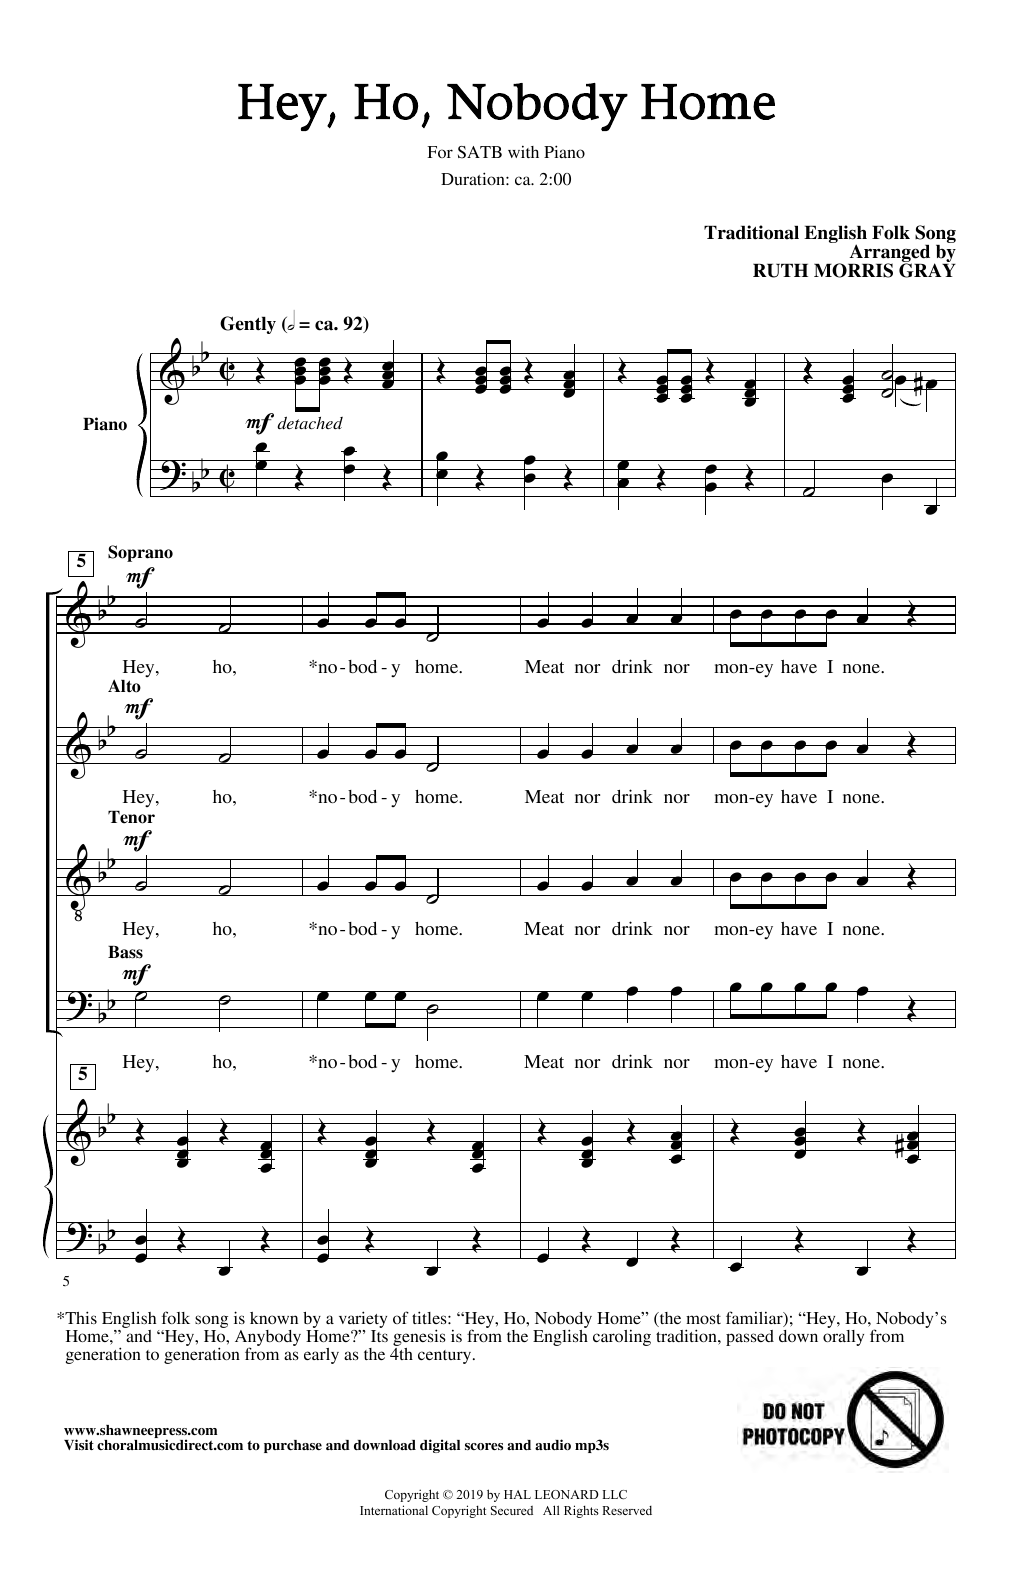 Hey Ho, Nobody Home (arr. Ruth Morris Gray) (SATB Choir)